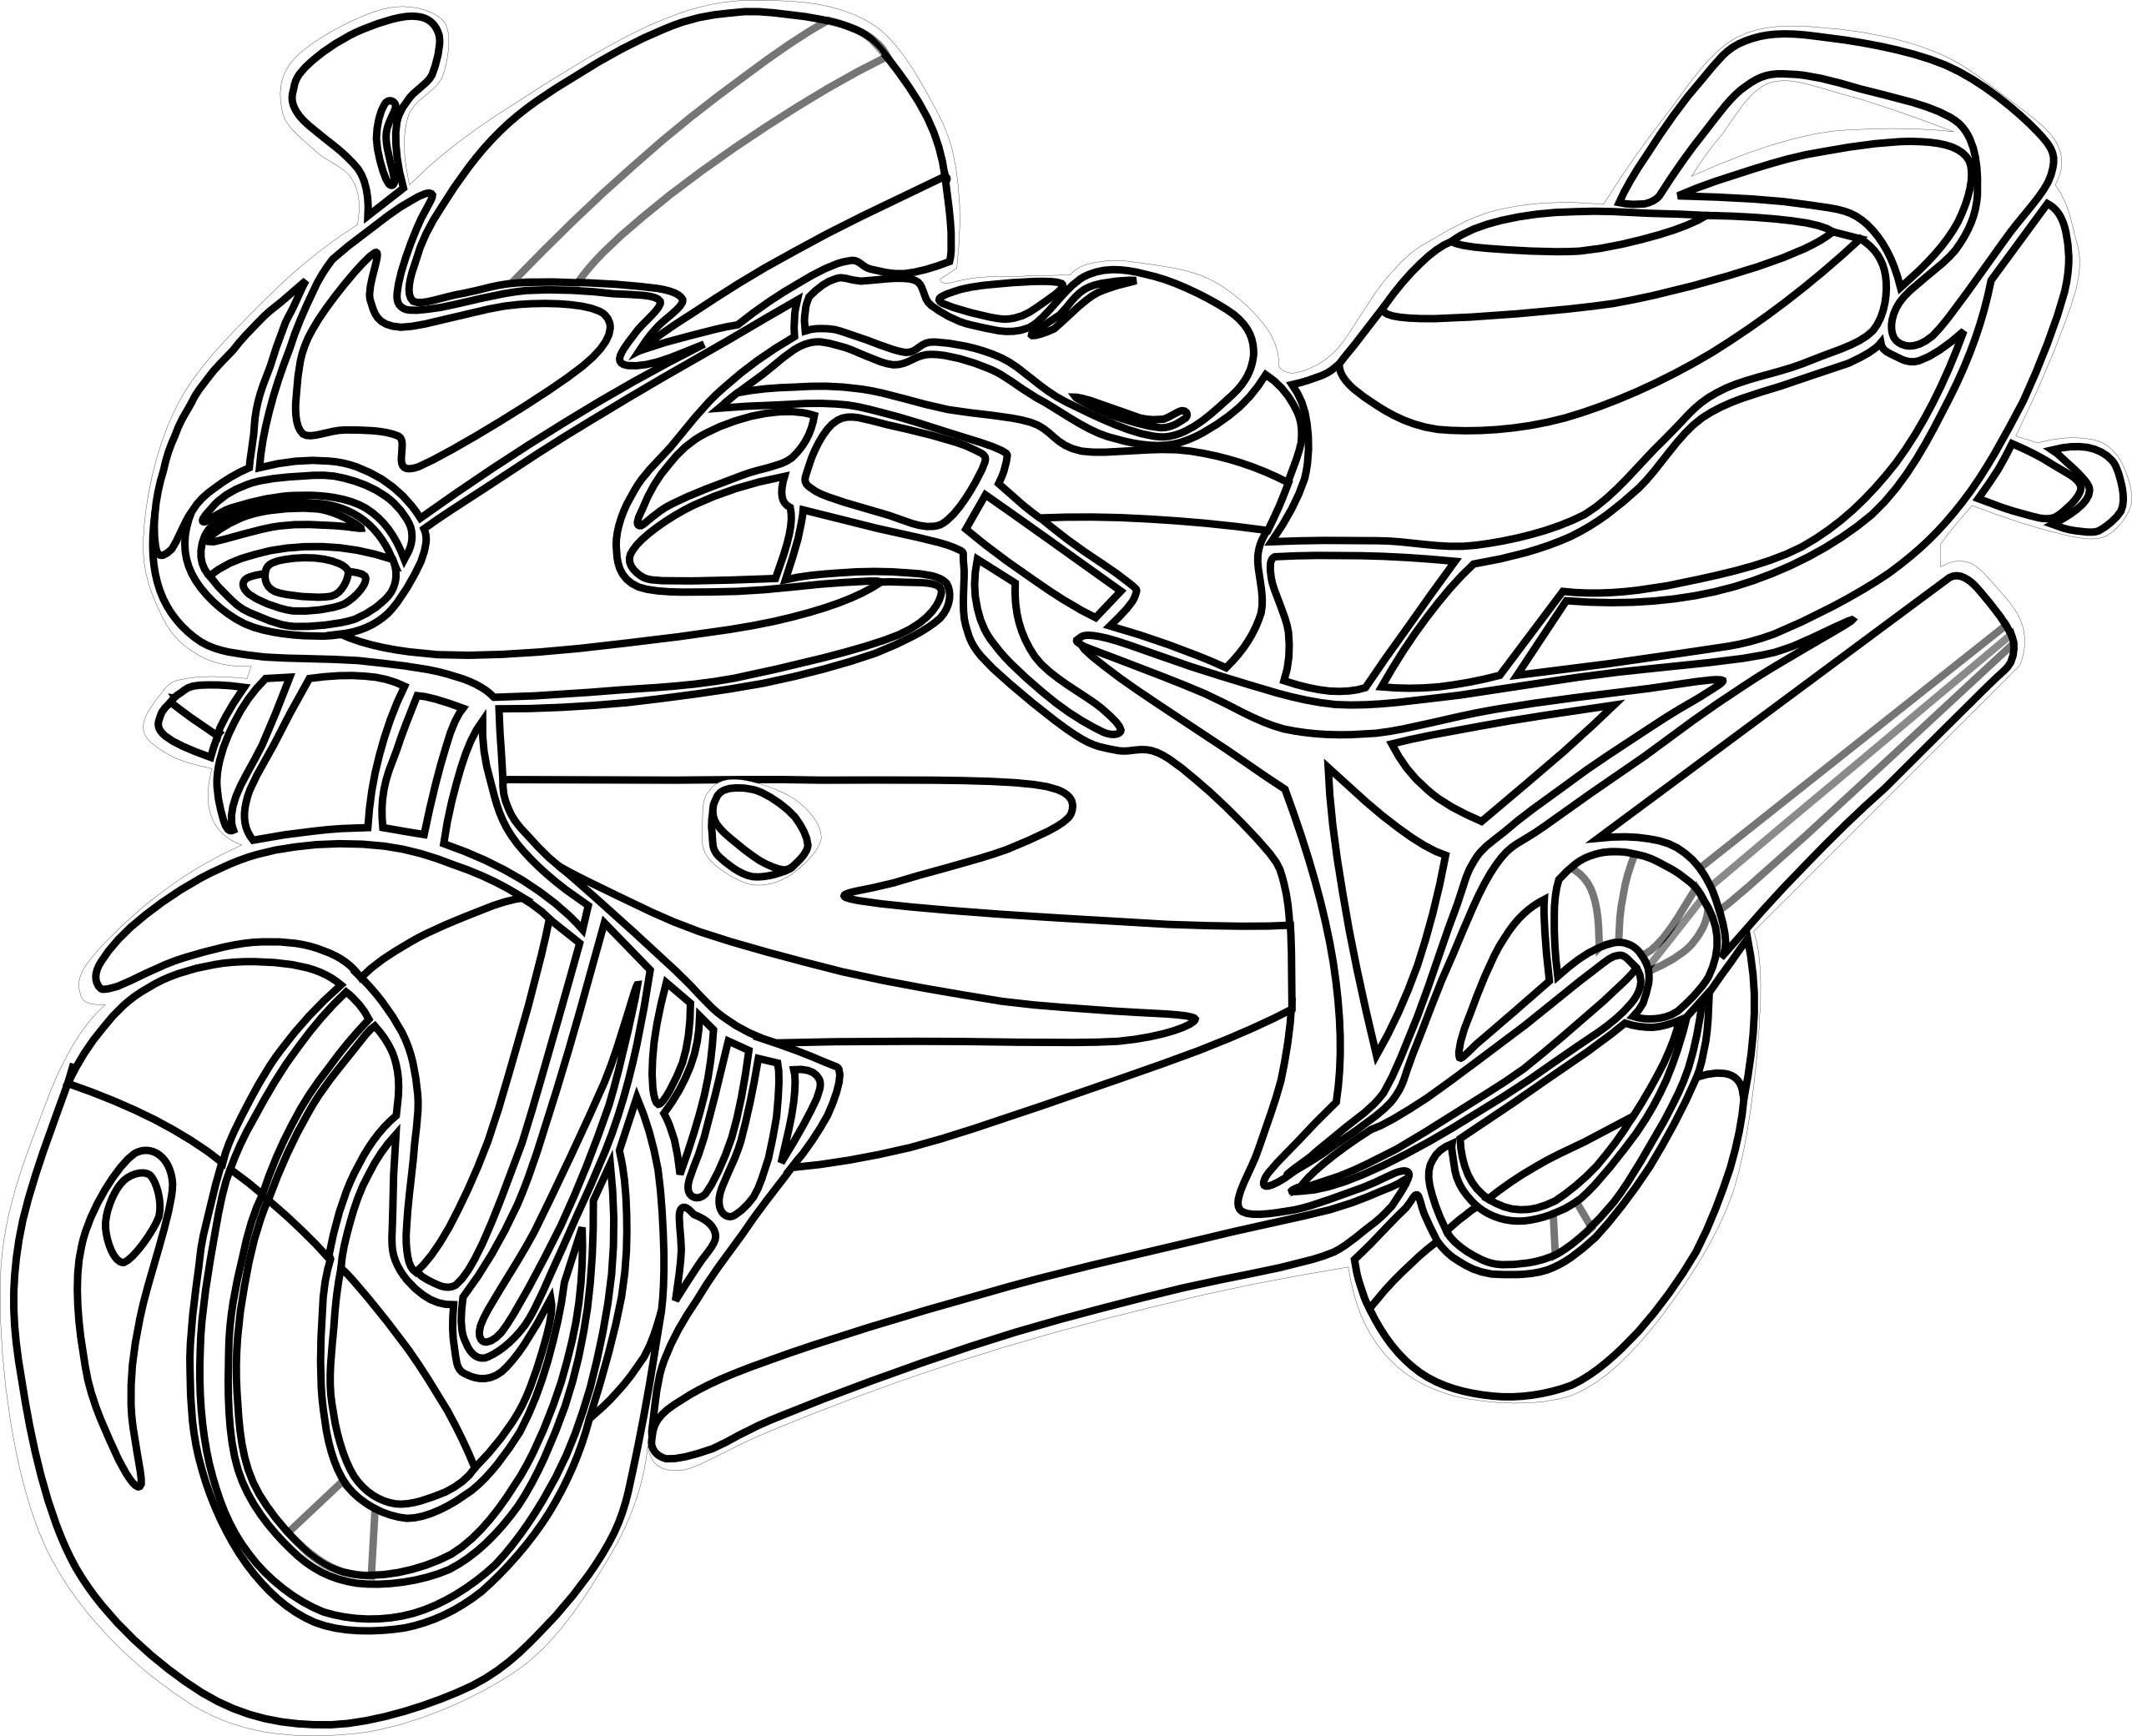 Free motorcycle clipart motorcycle clip art pictures graphics 4.